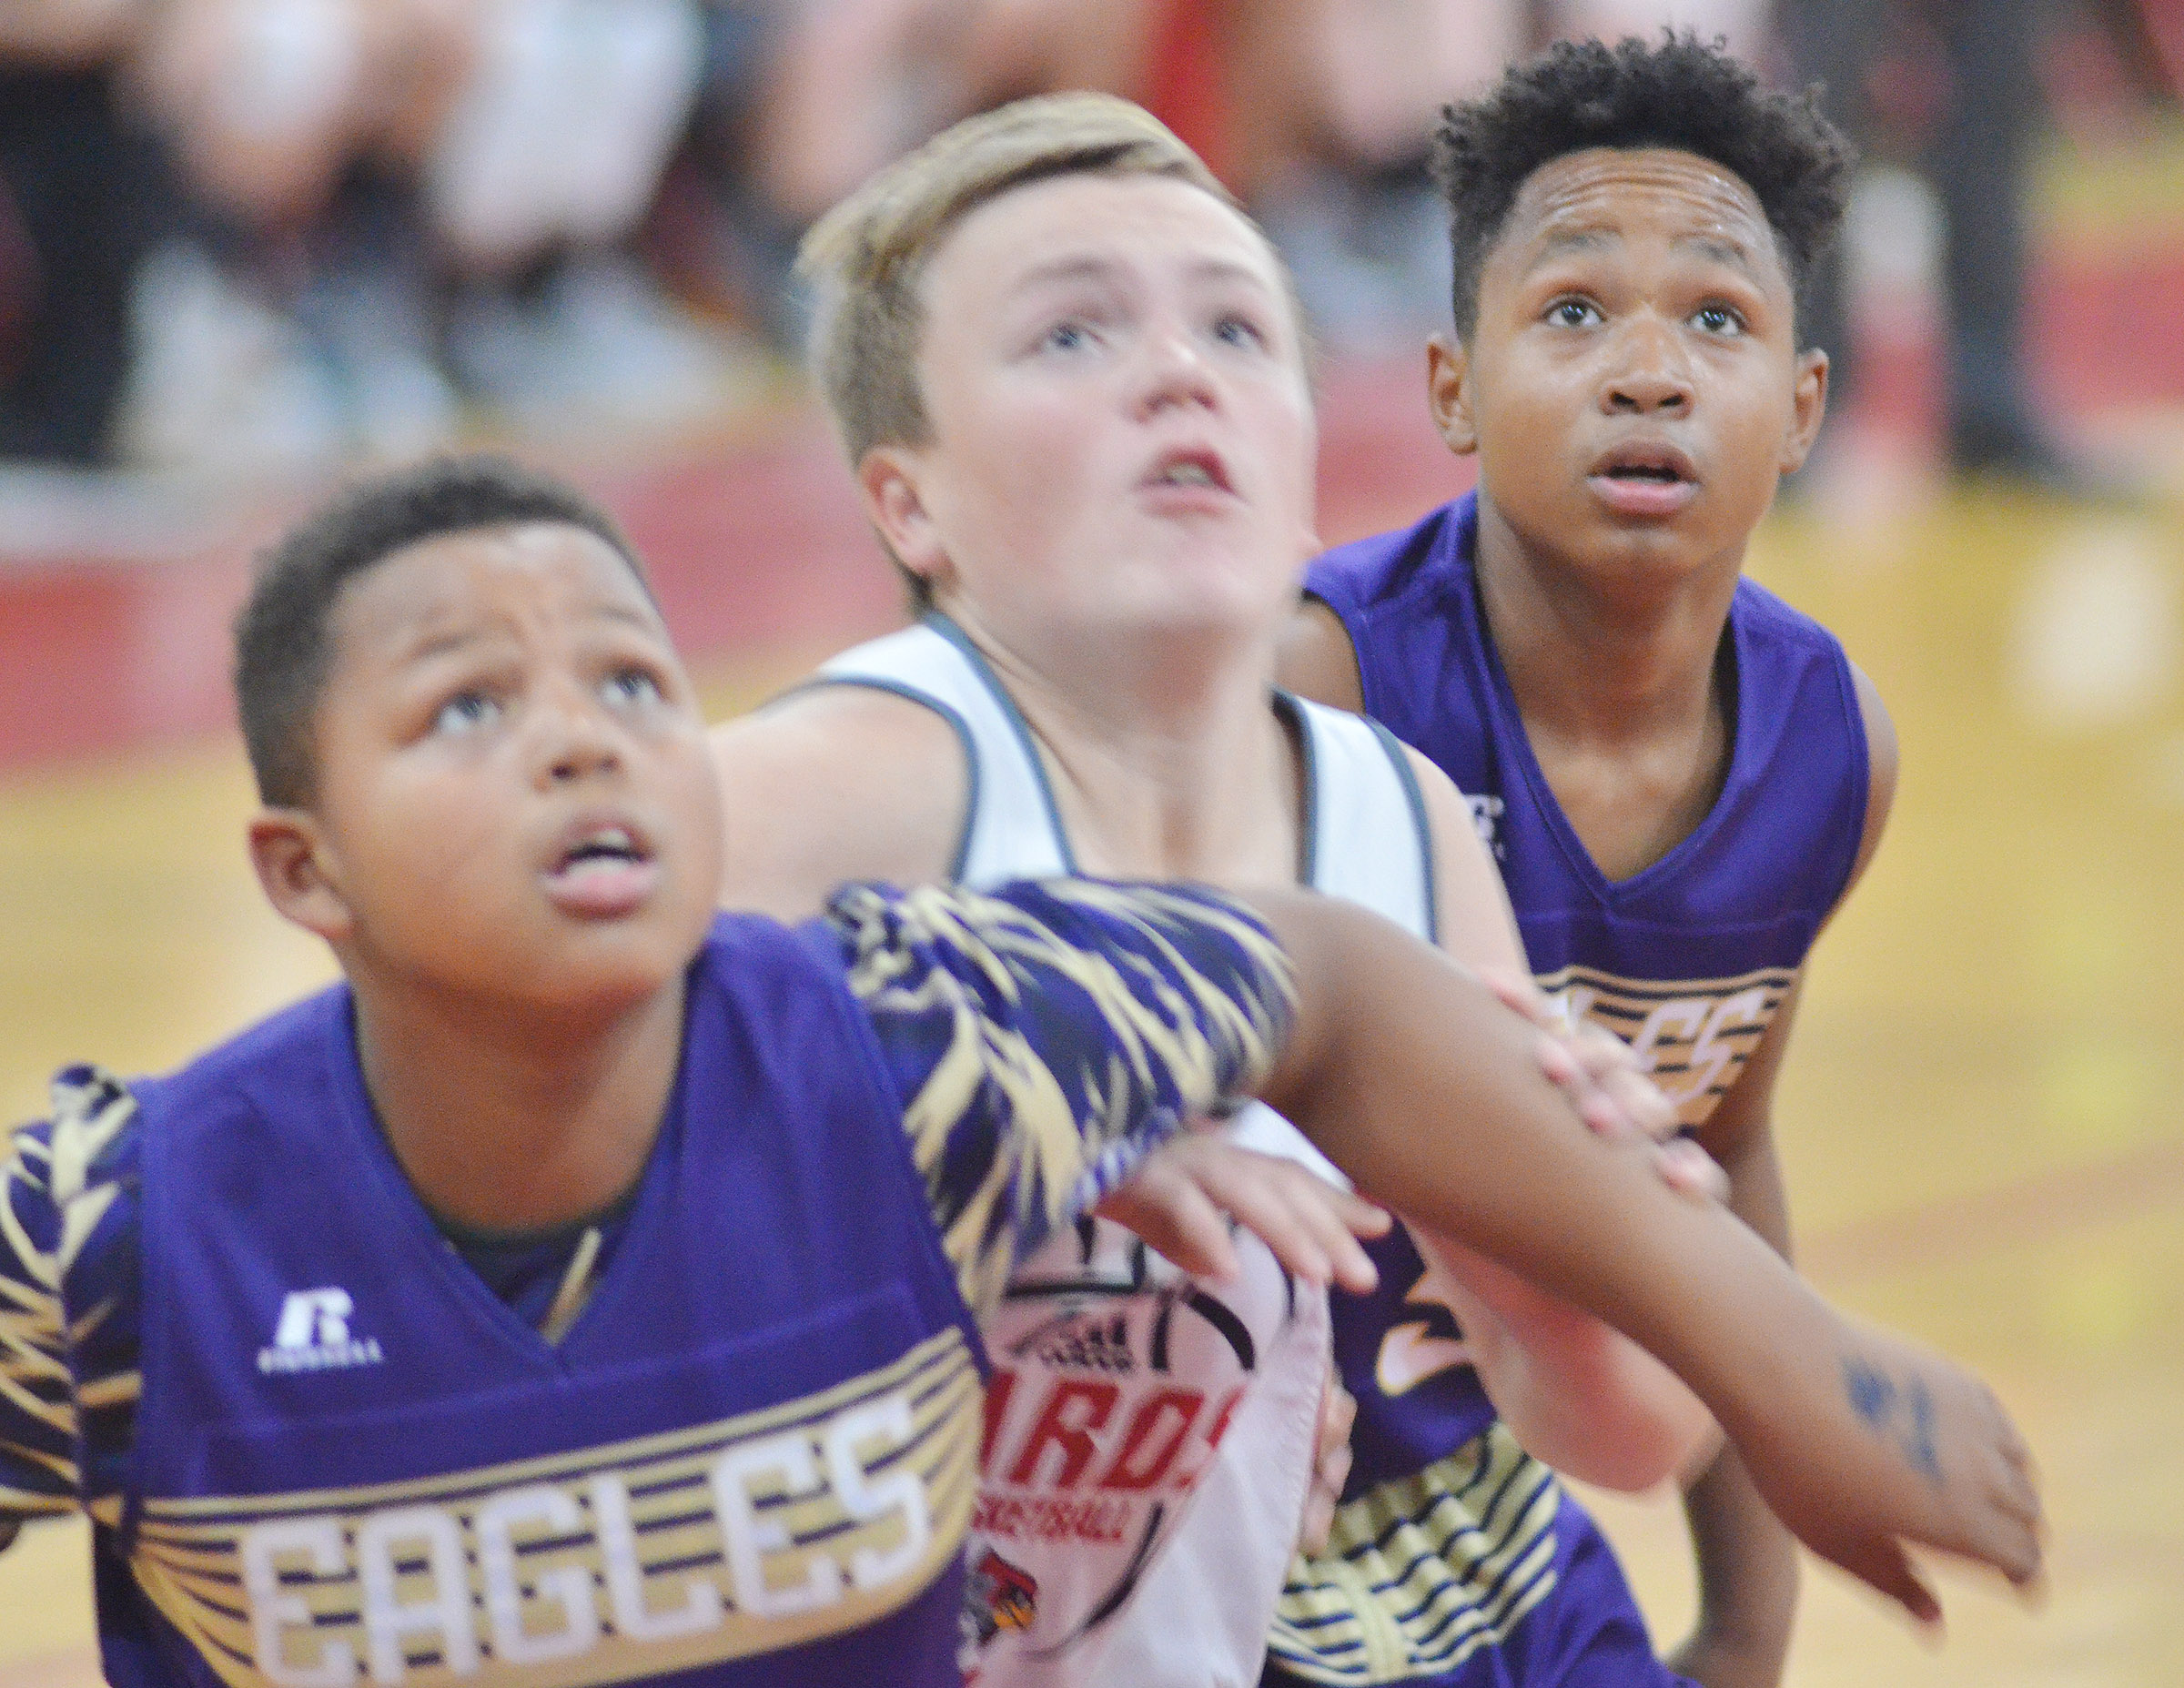 CMS seventh-grader Deondre Weathers, at right, looks for a rebound. At left is his twin brother Deondre Weathers.